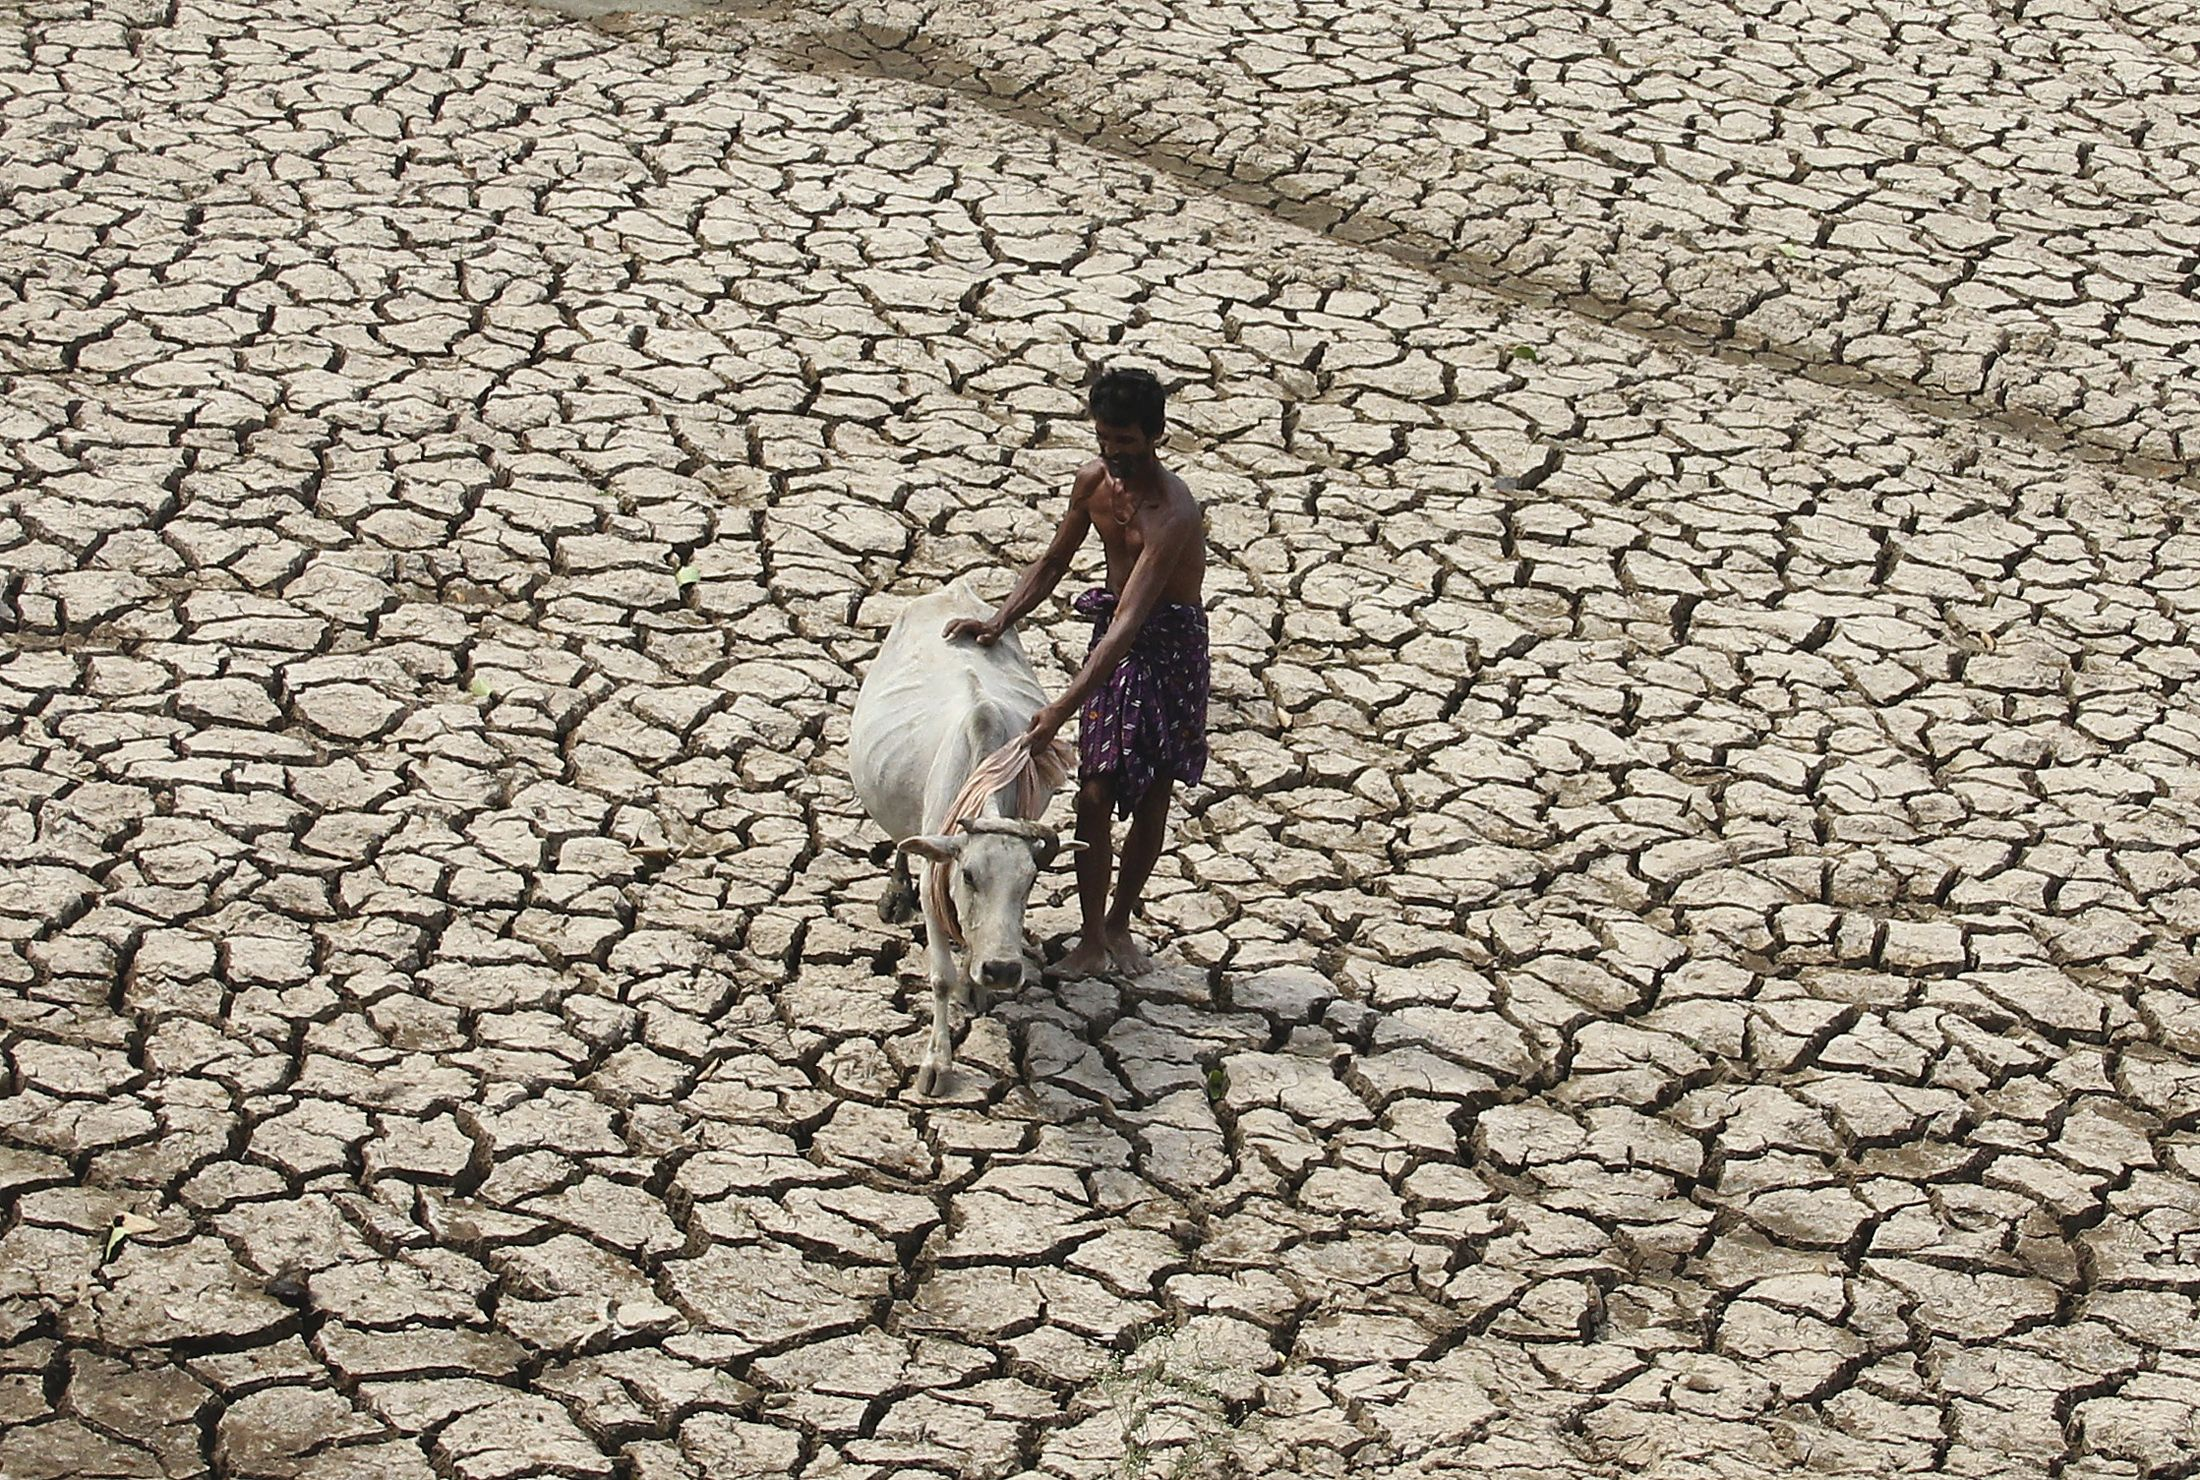 Water scarcity affects 4 billion people